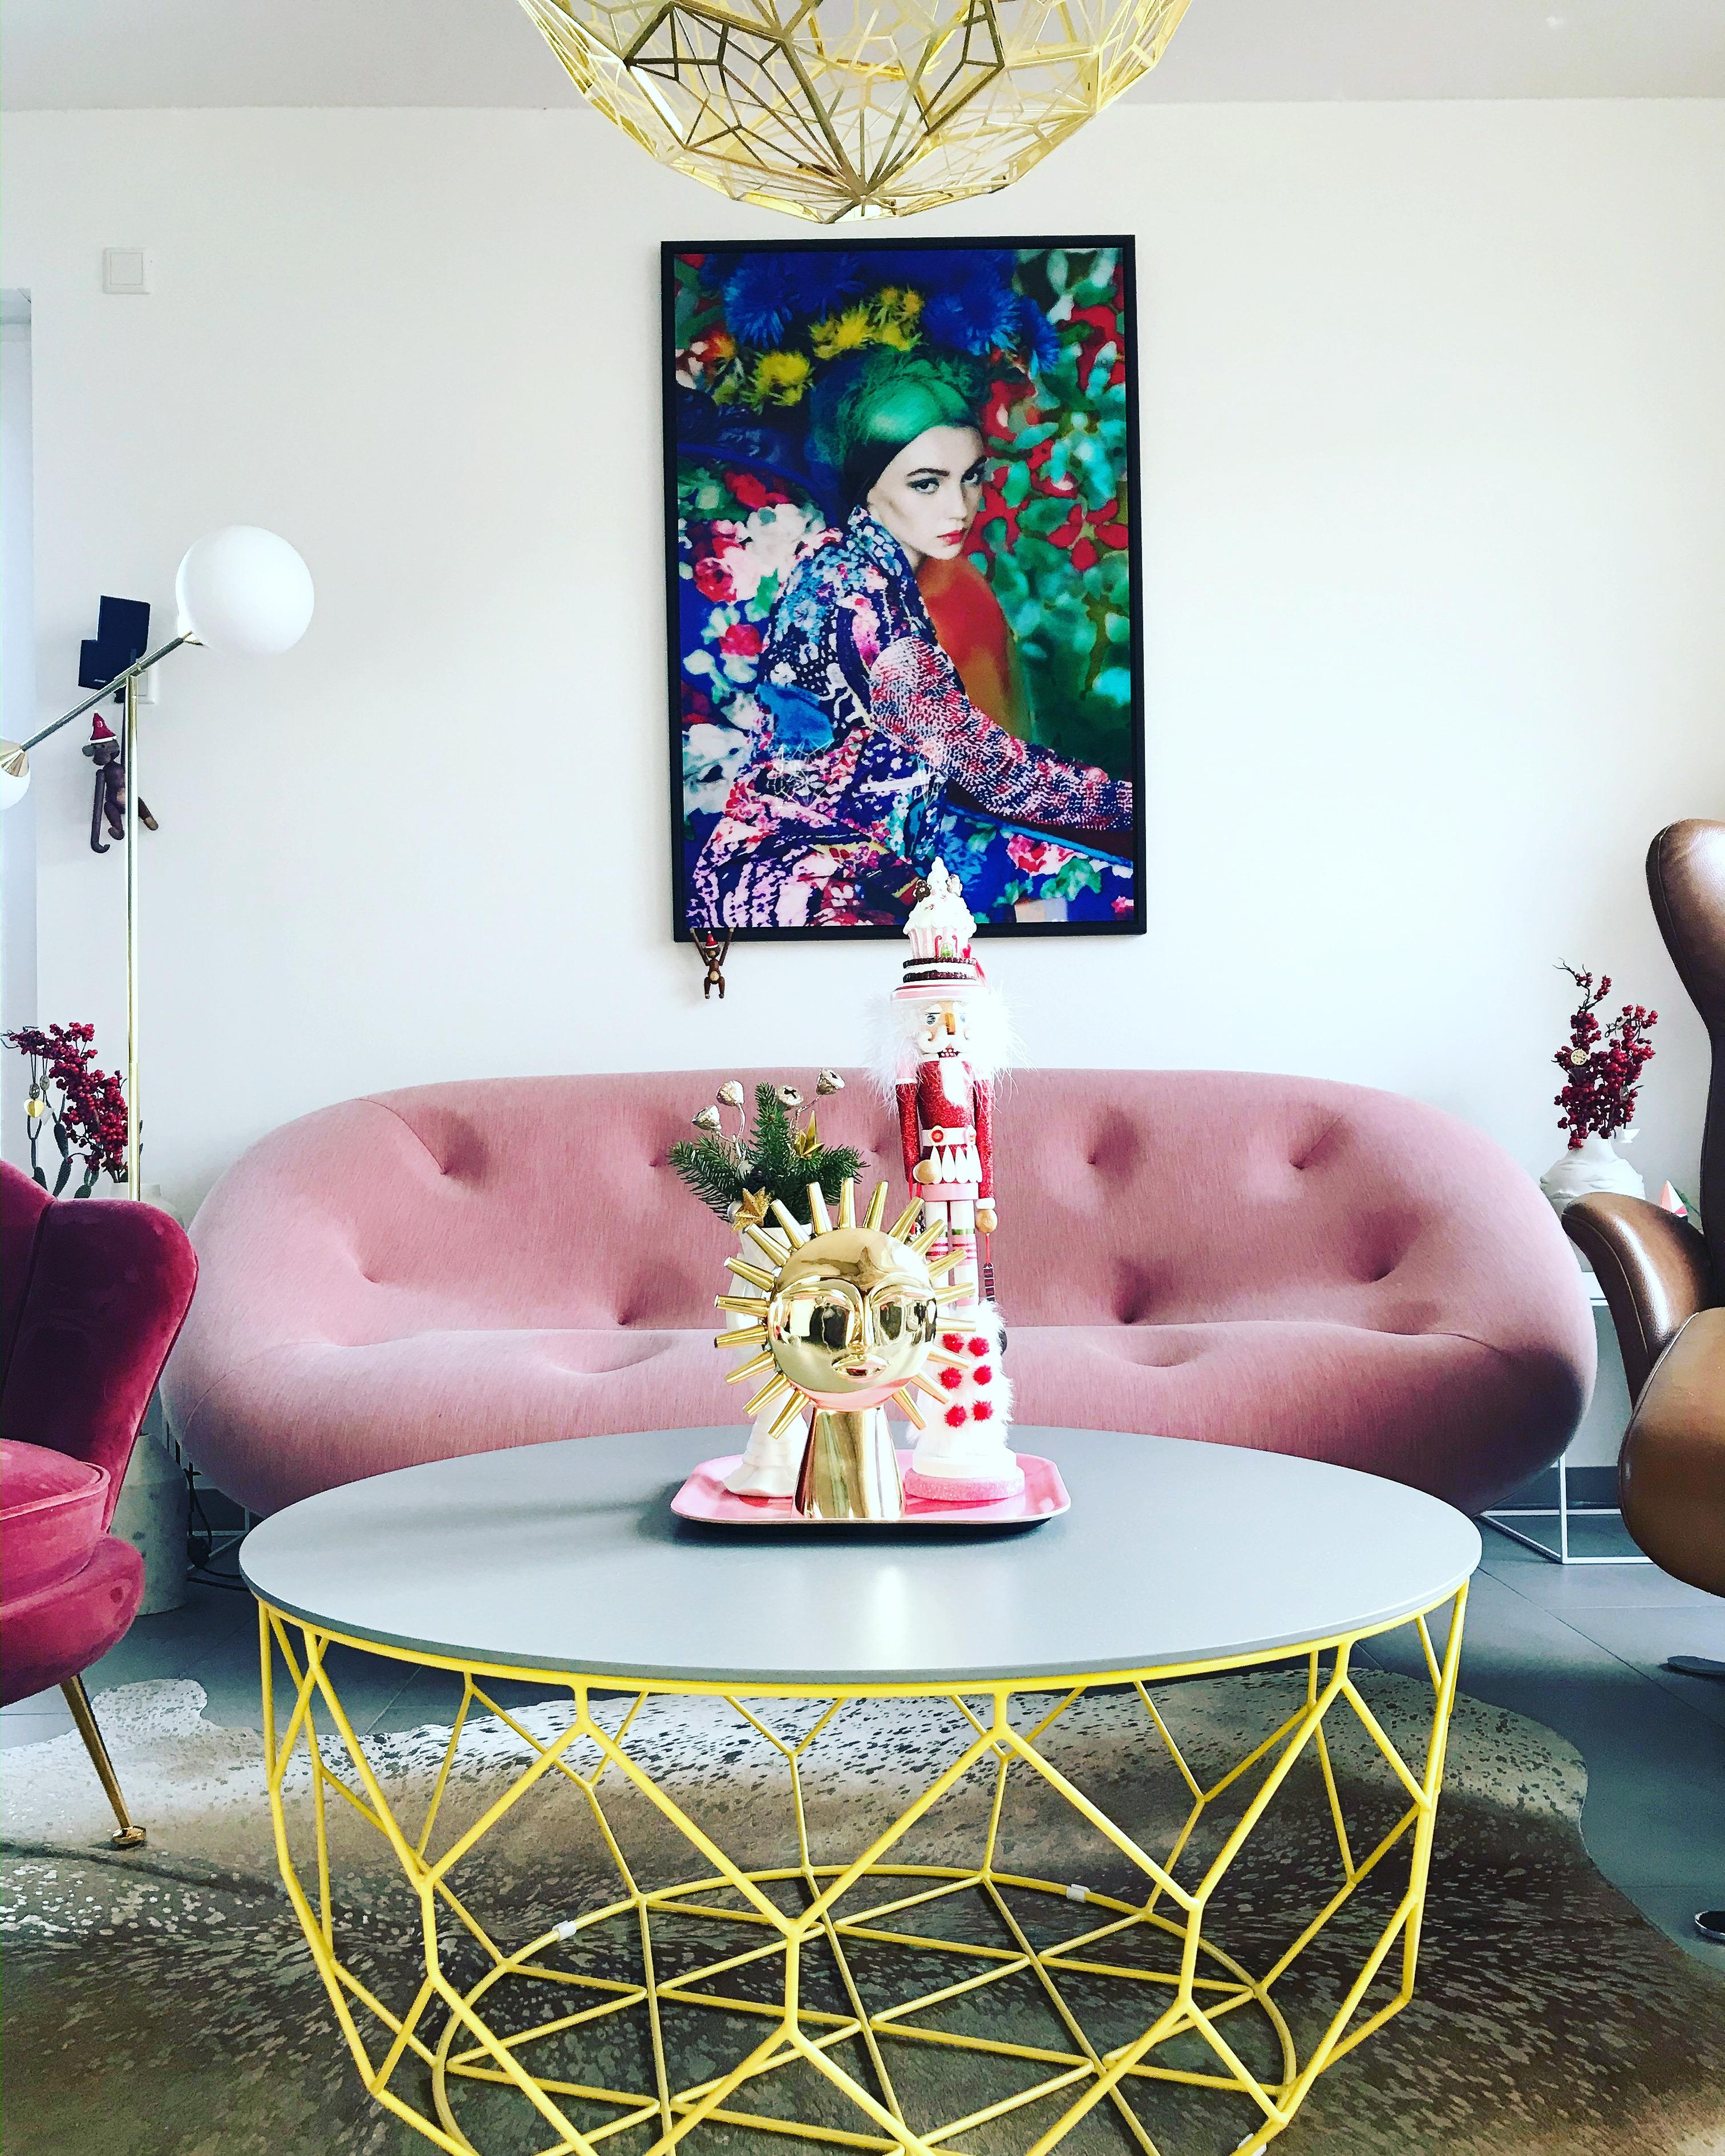 #trauminrosa #wohnzimmer #livecolorfully